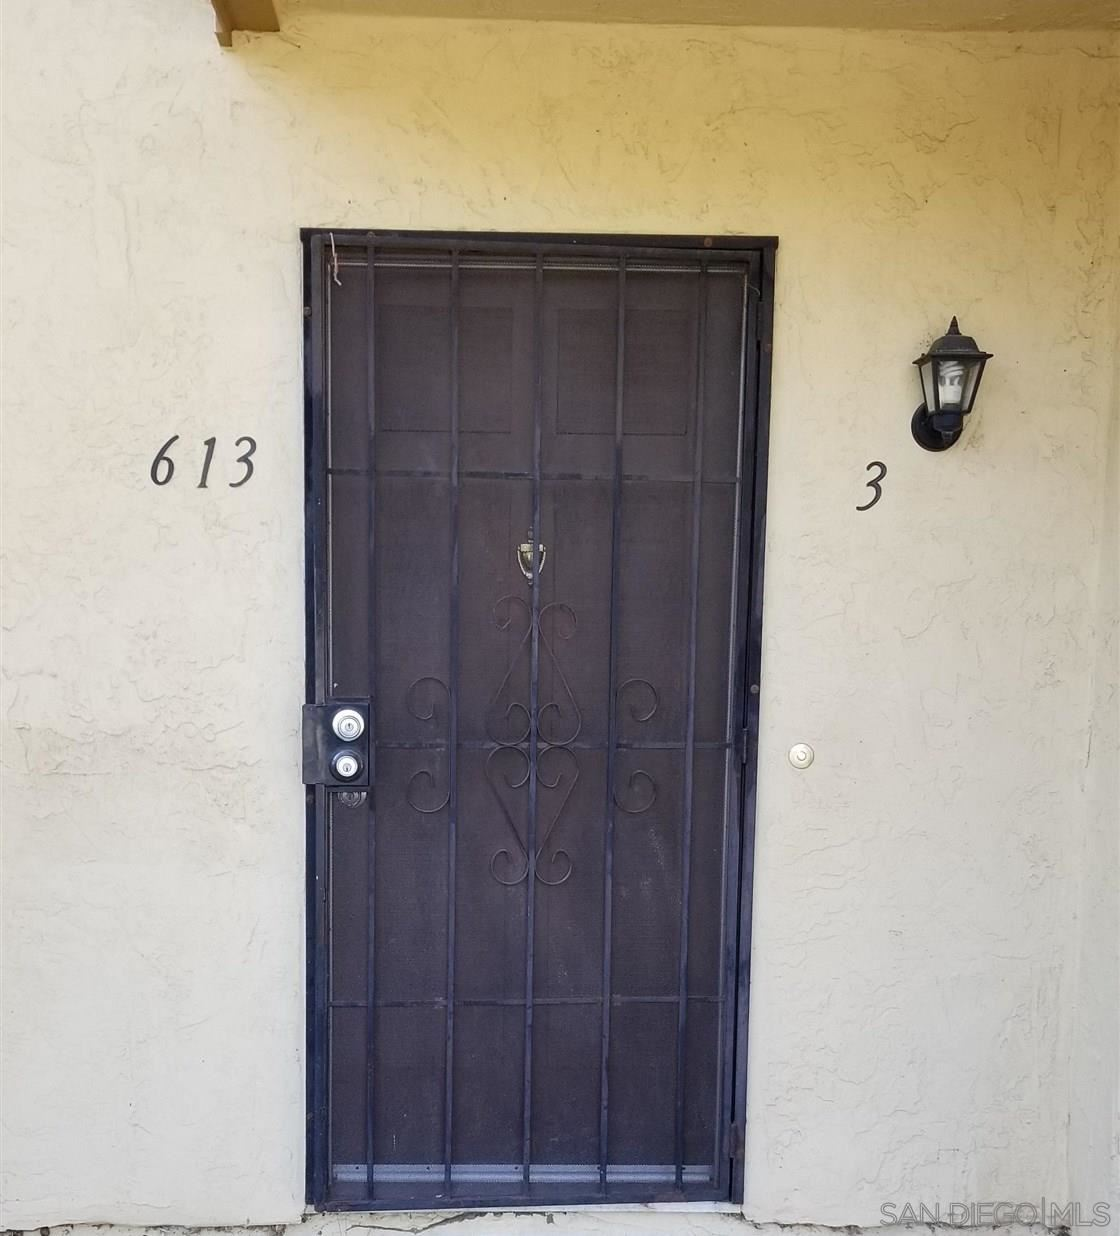 613 R ave, National City, CA 91950 - #: 210028136